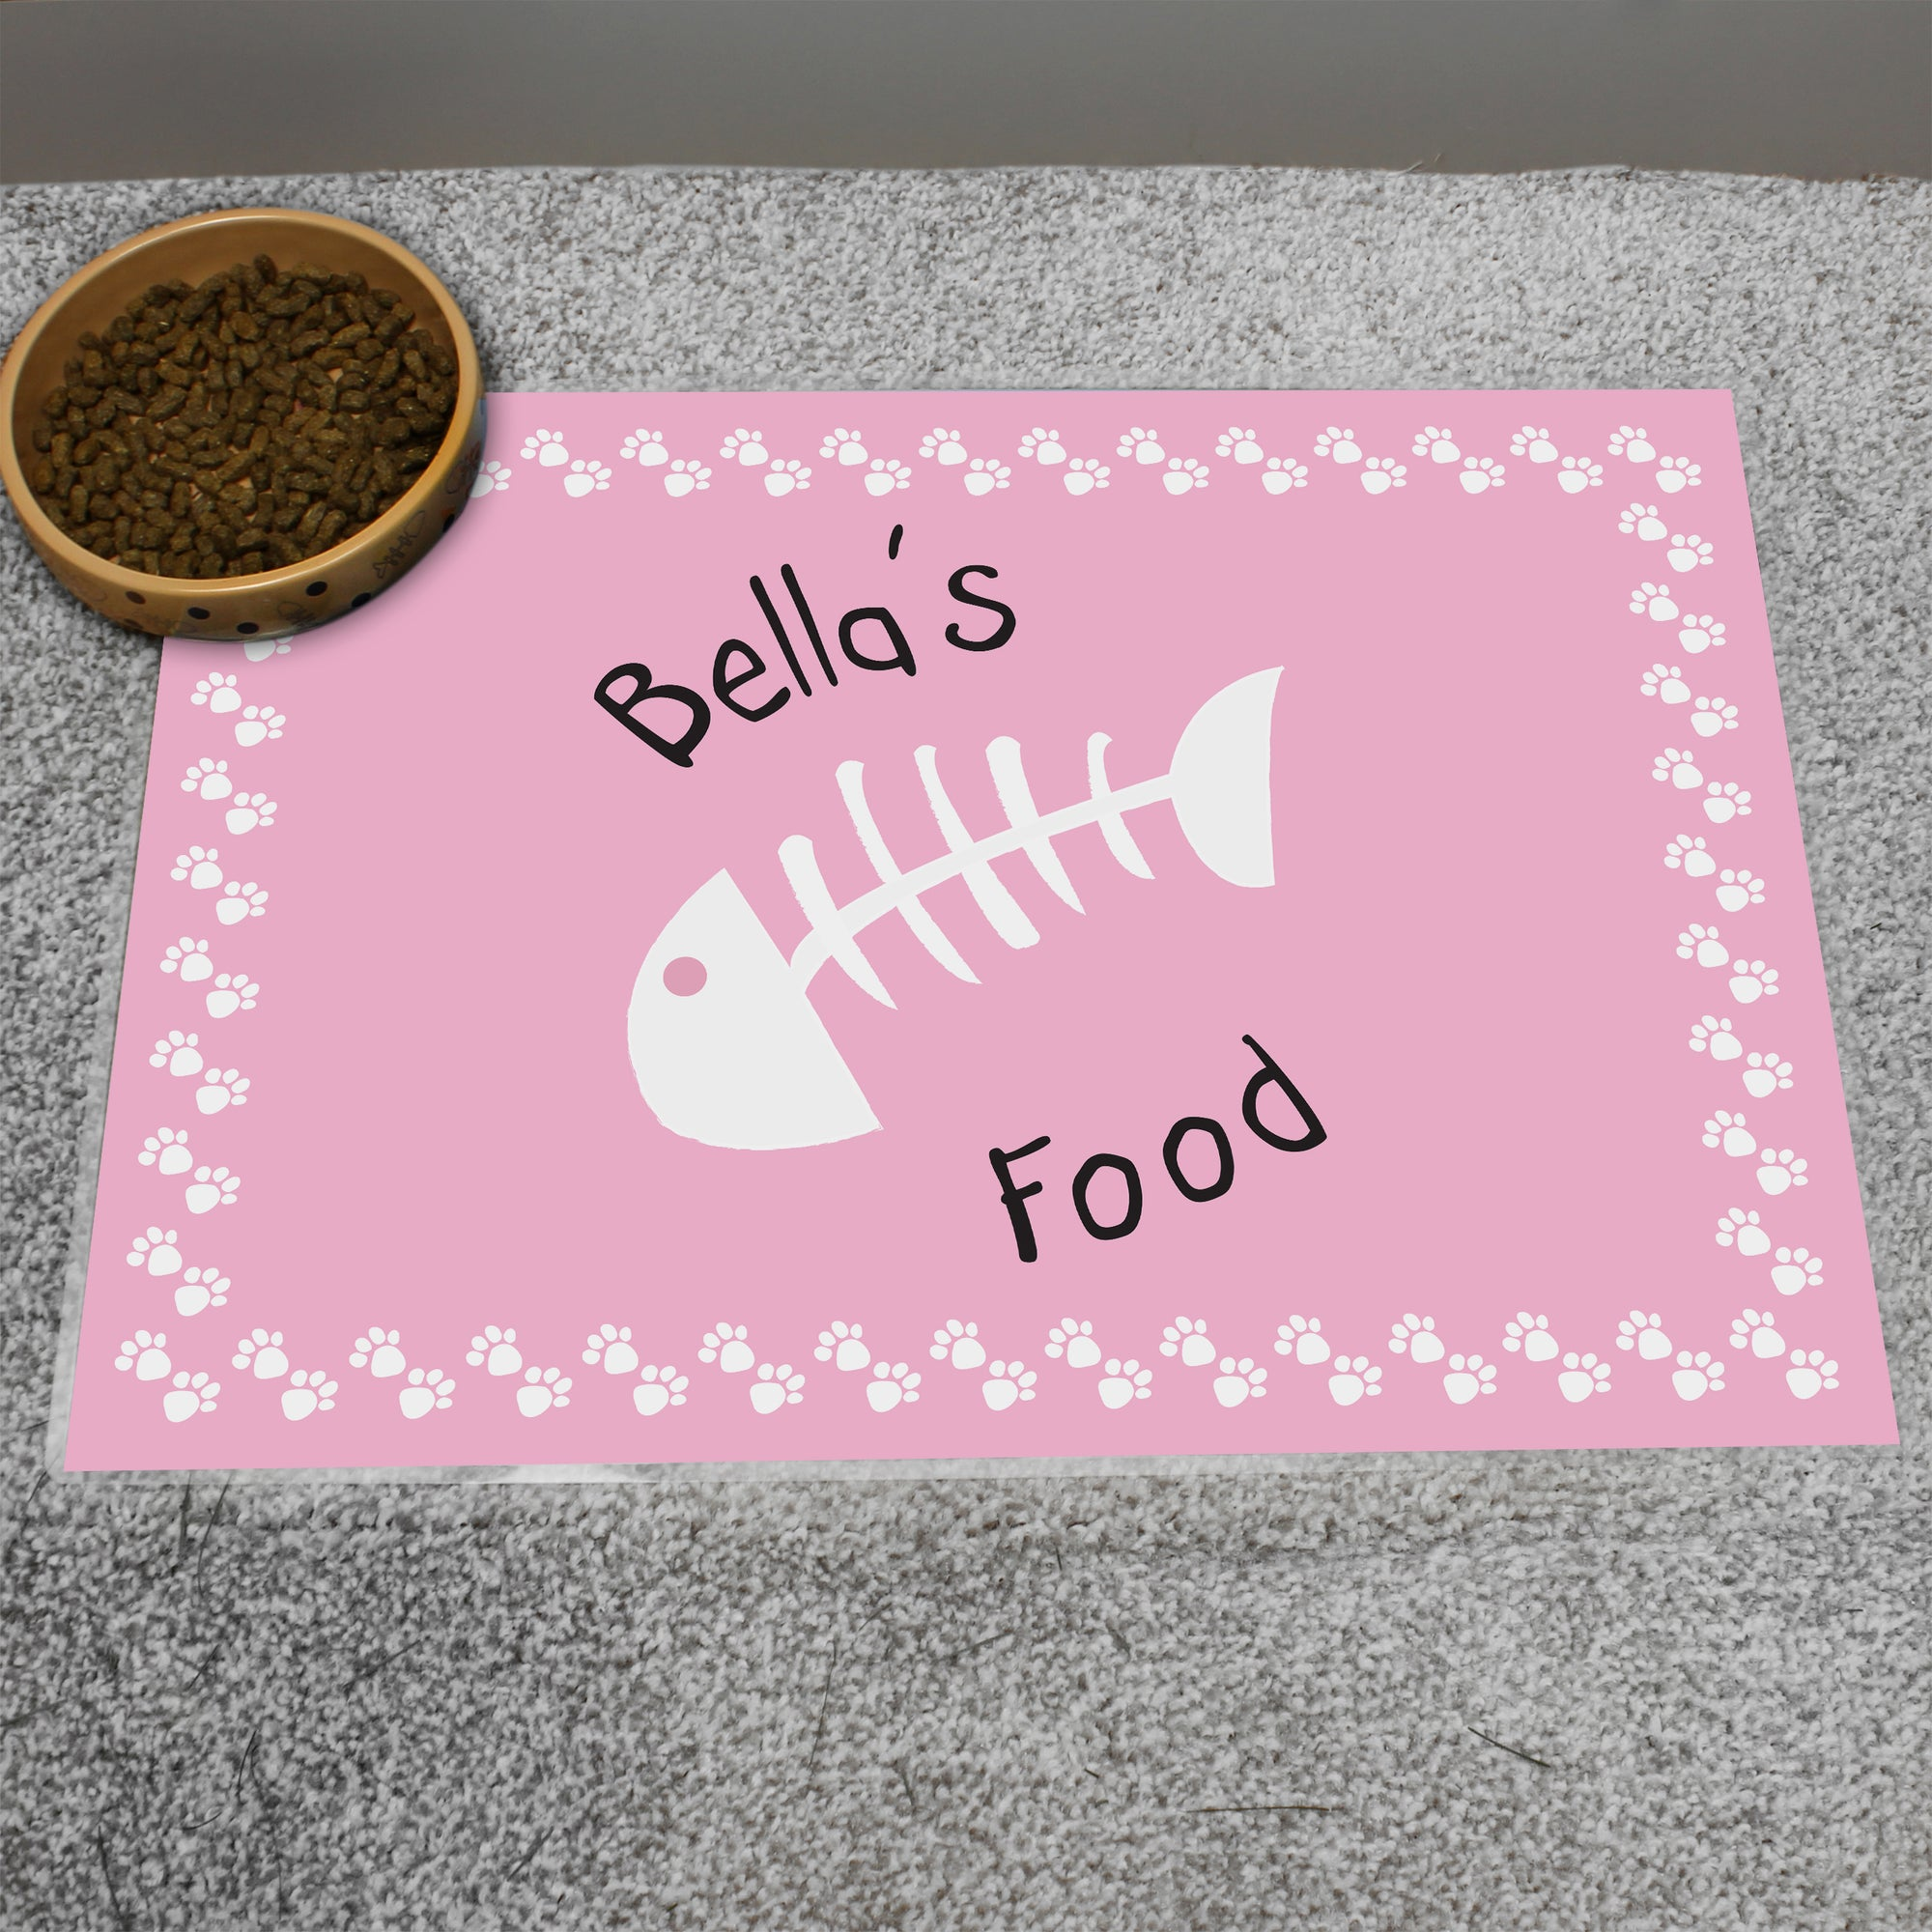 Personalised laminated pink placemat for a cat. The mat has a white illusatration in the middle of some fish bones and white paw prints around the outside, and can be personalised with your cat's name followed by the word 'food' which is a fixed part of the design.